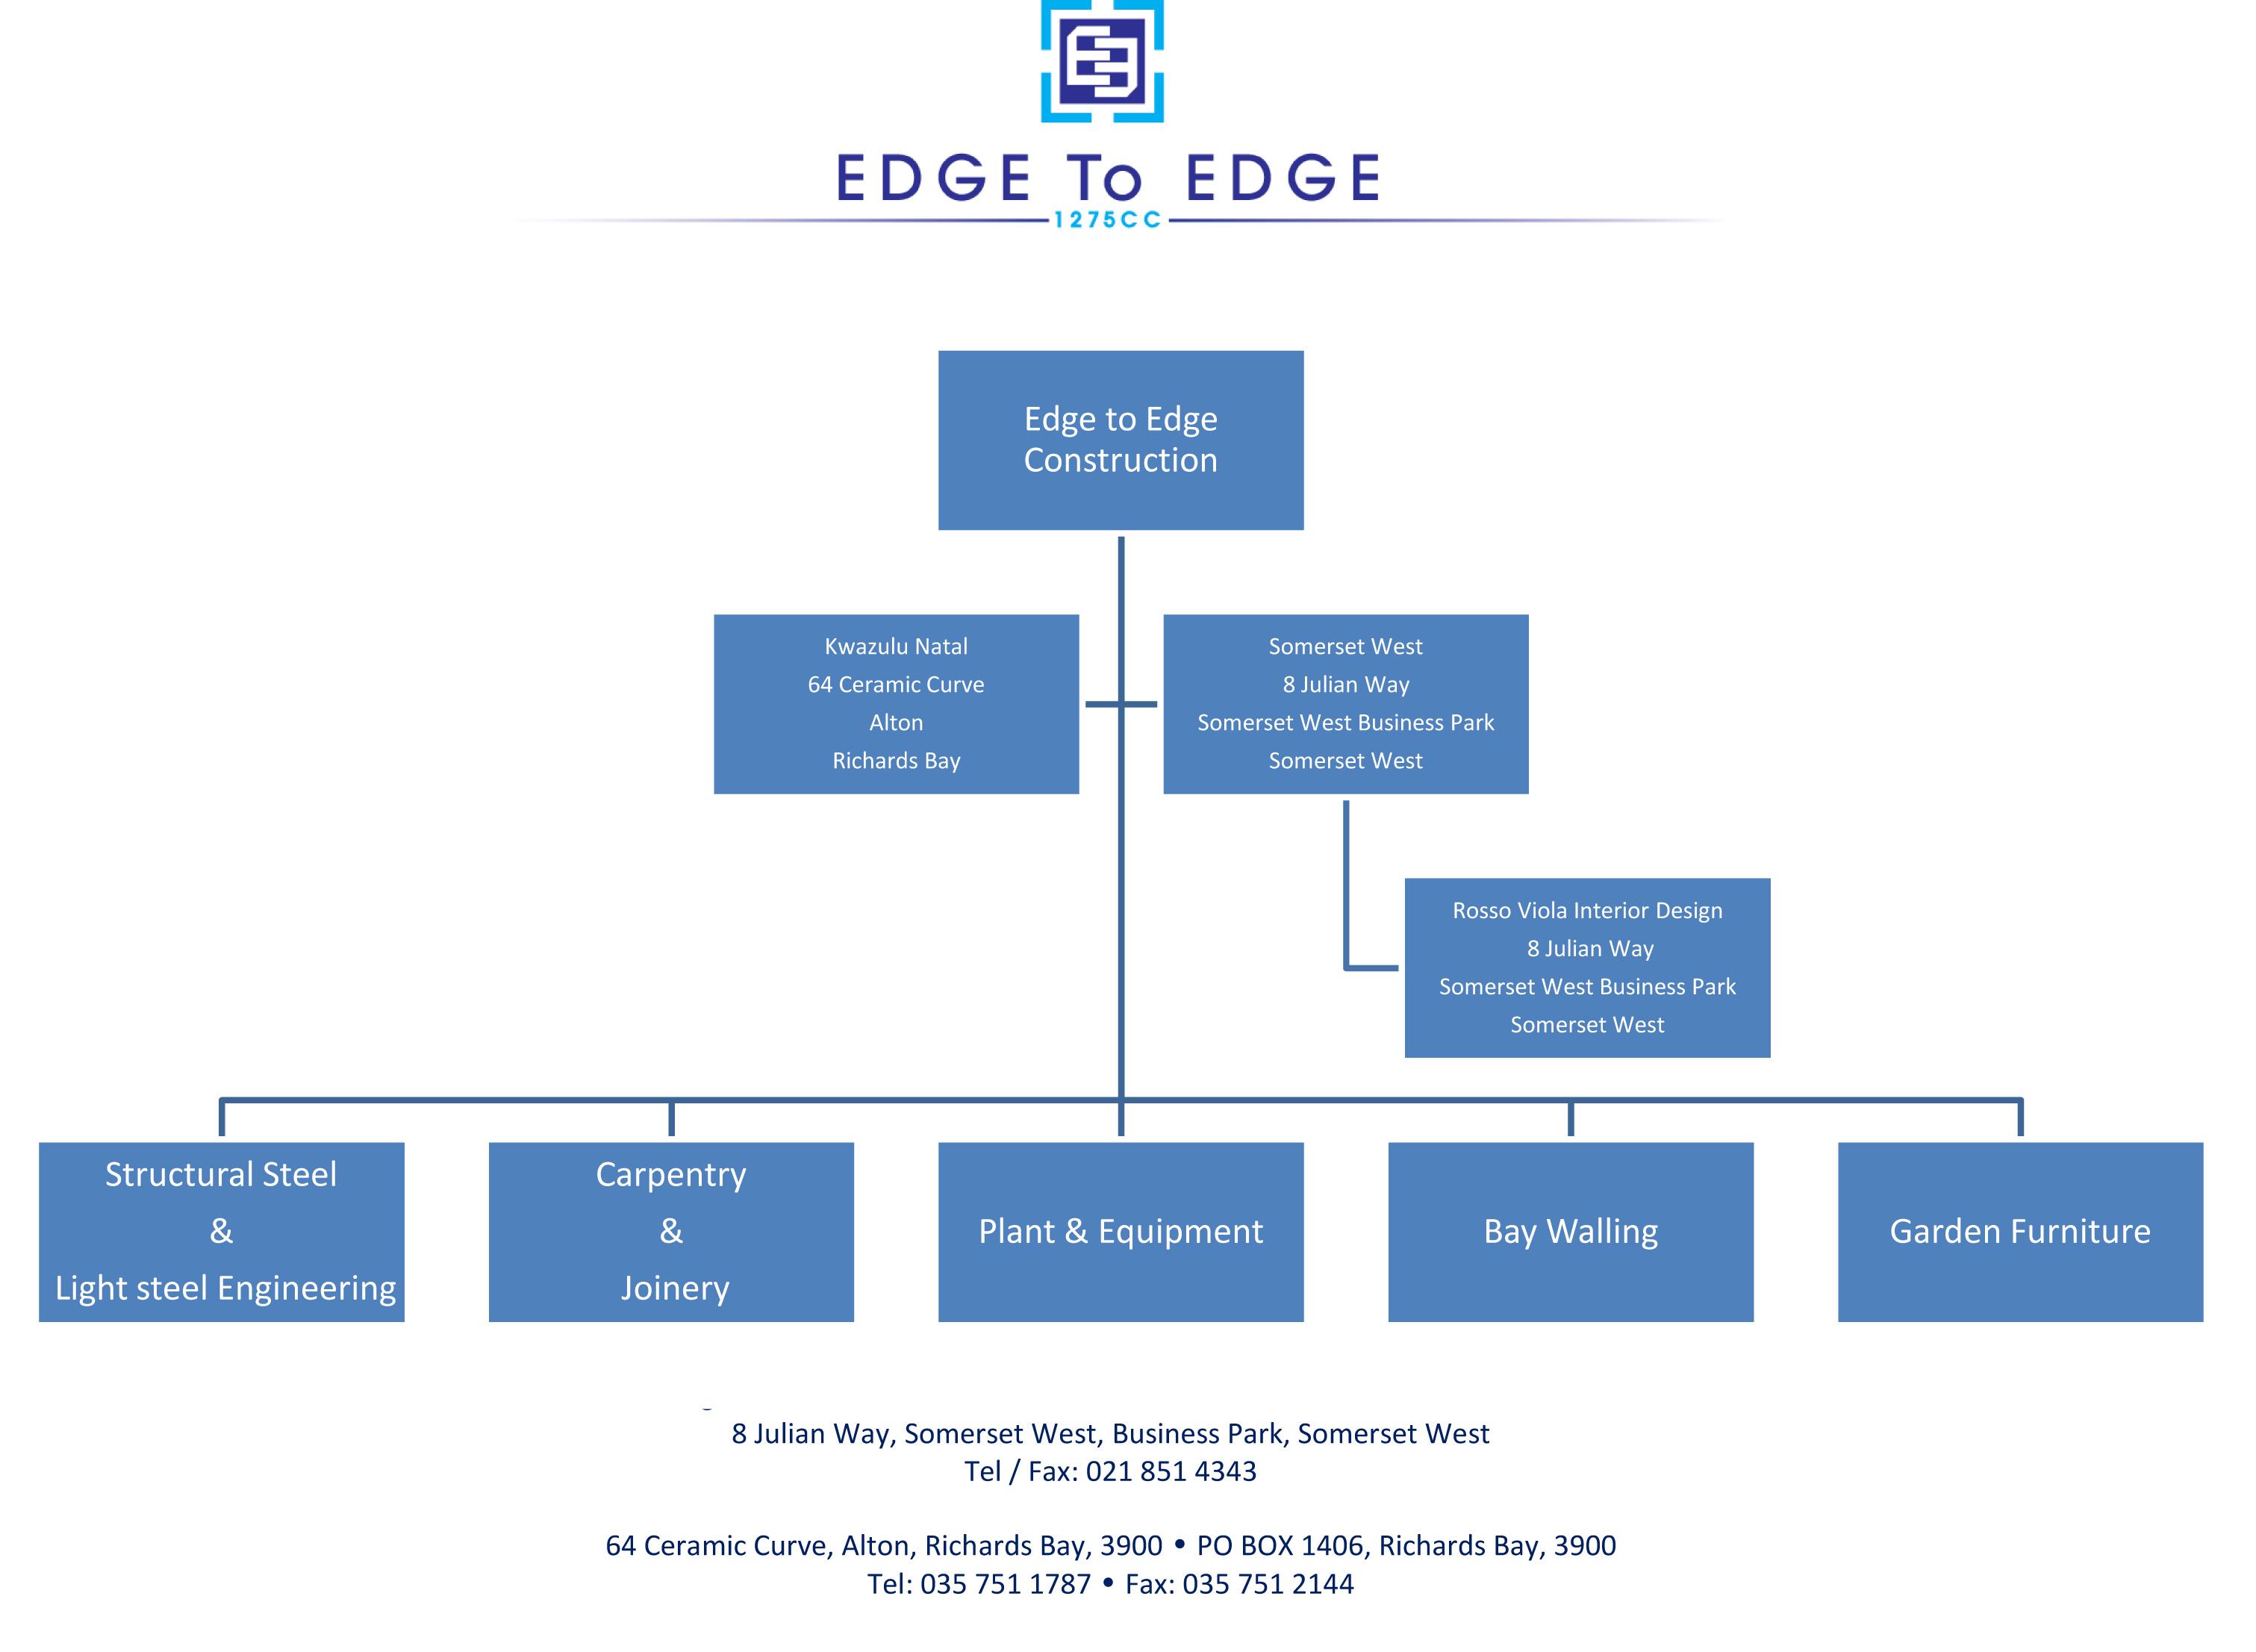 company divisions at edge to edge constructions